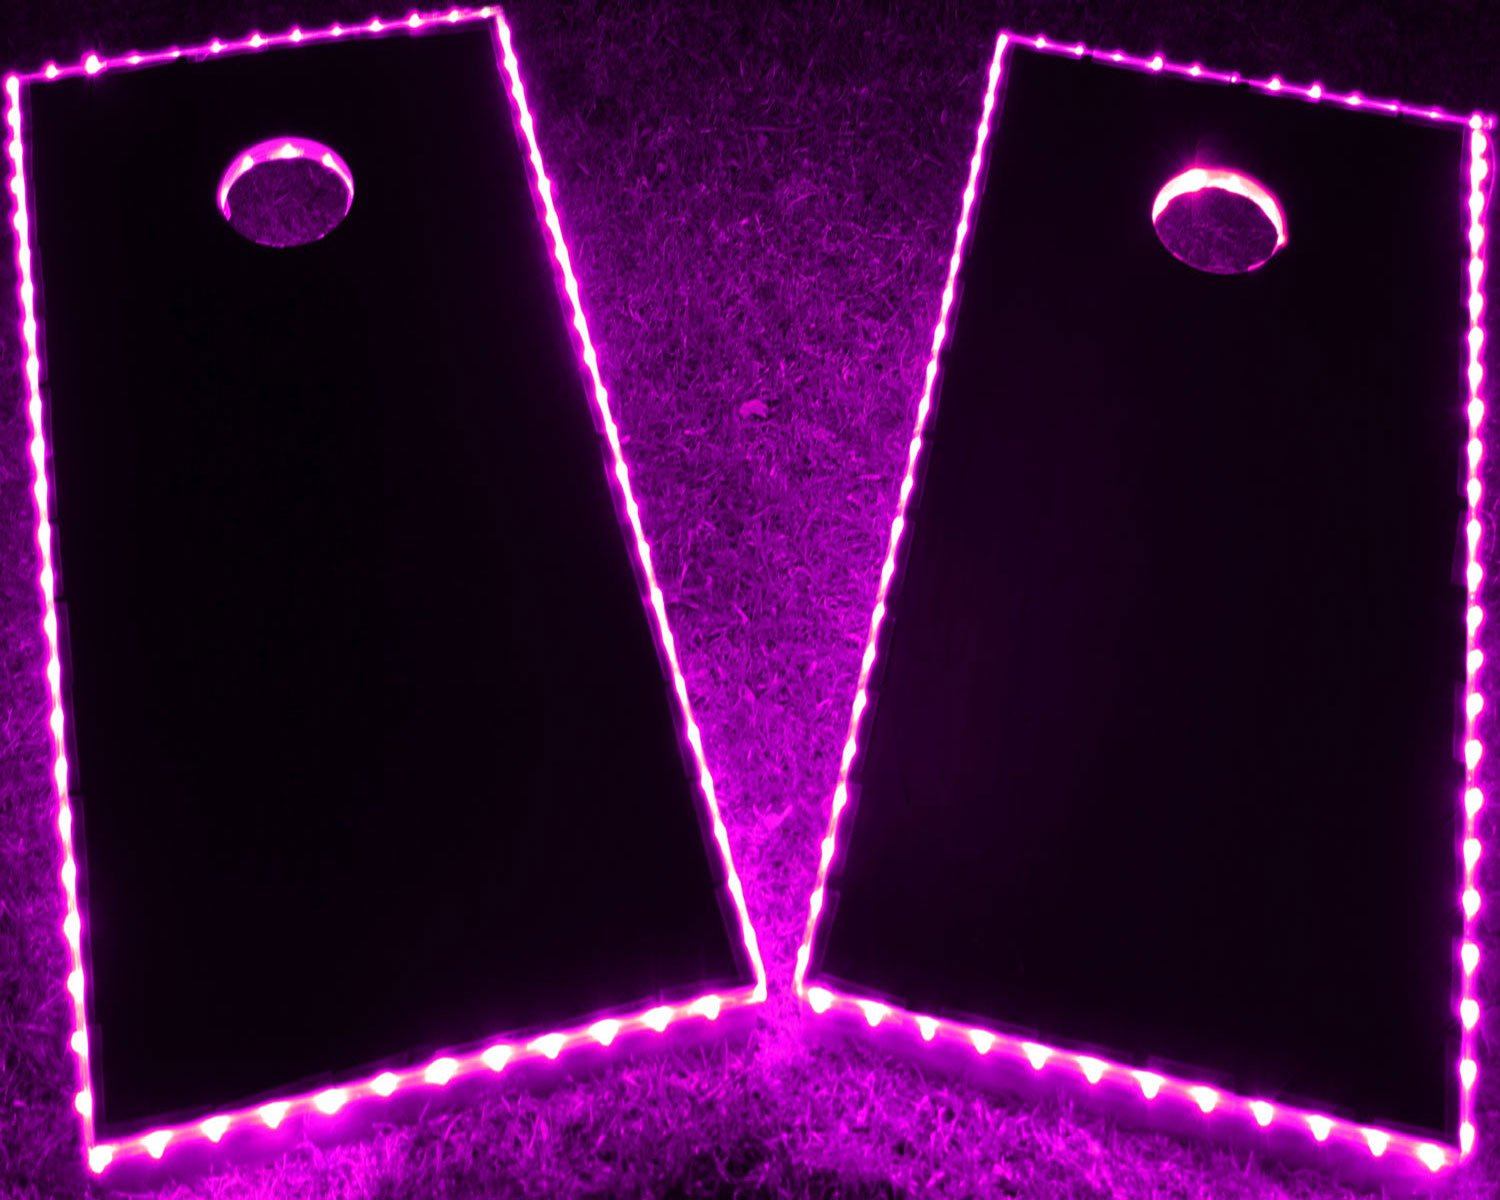 GlowCity LED Cornhole Board Lights - Ultra Bright Lights for Corn Hole and Board, Fits 2 x Boards - Waterproof and Durable Cable Ideal for Family Outdoor Games or Backyard Glow in The Dark Fun (Pink) by GlowCity